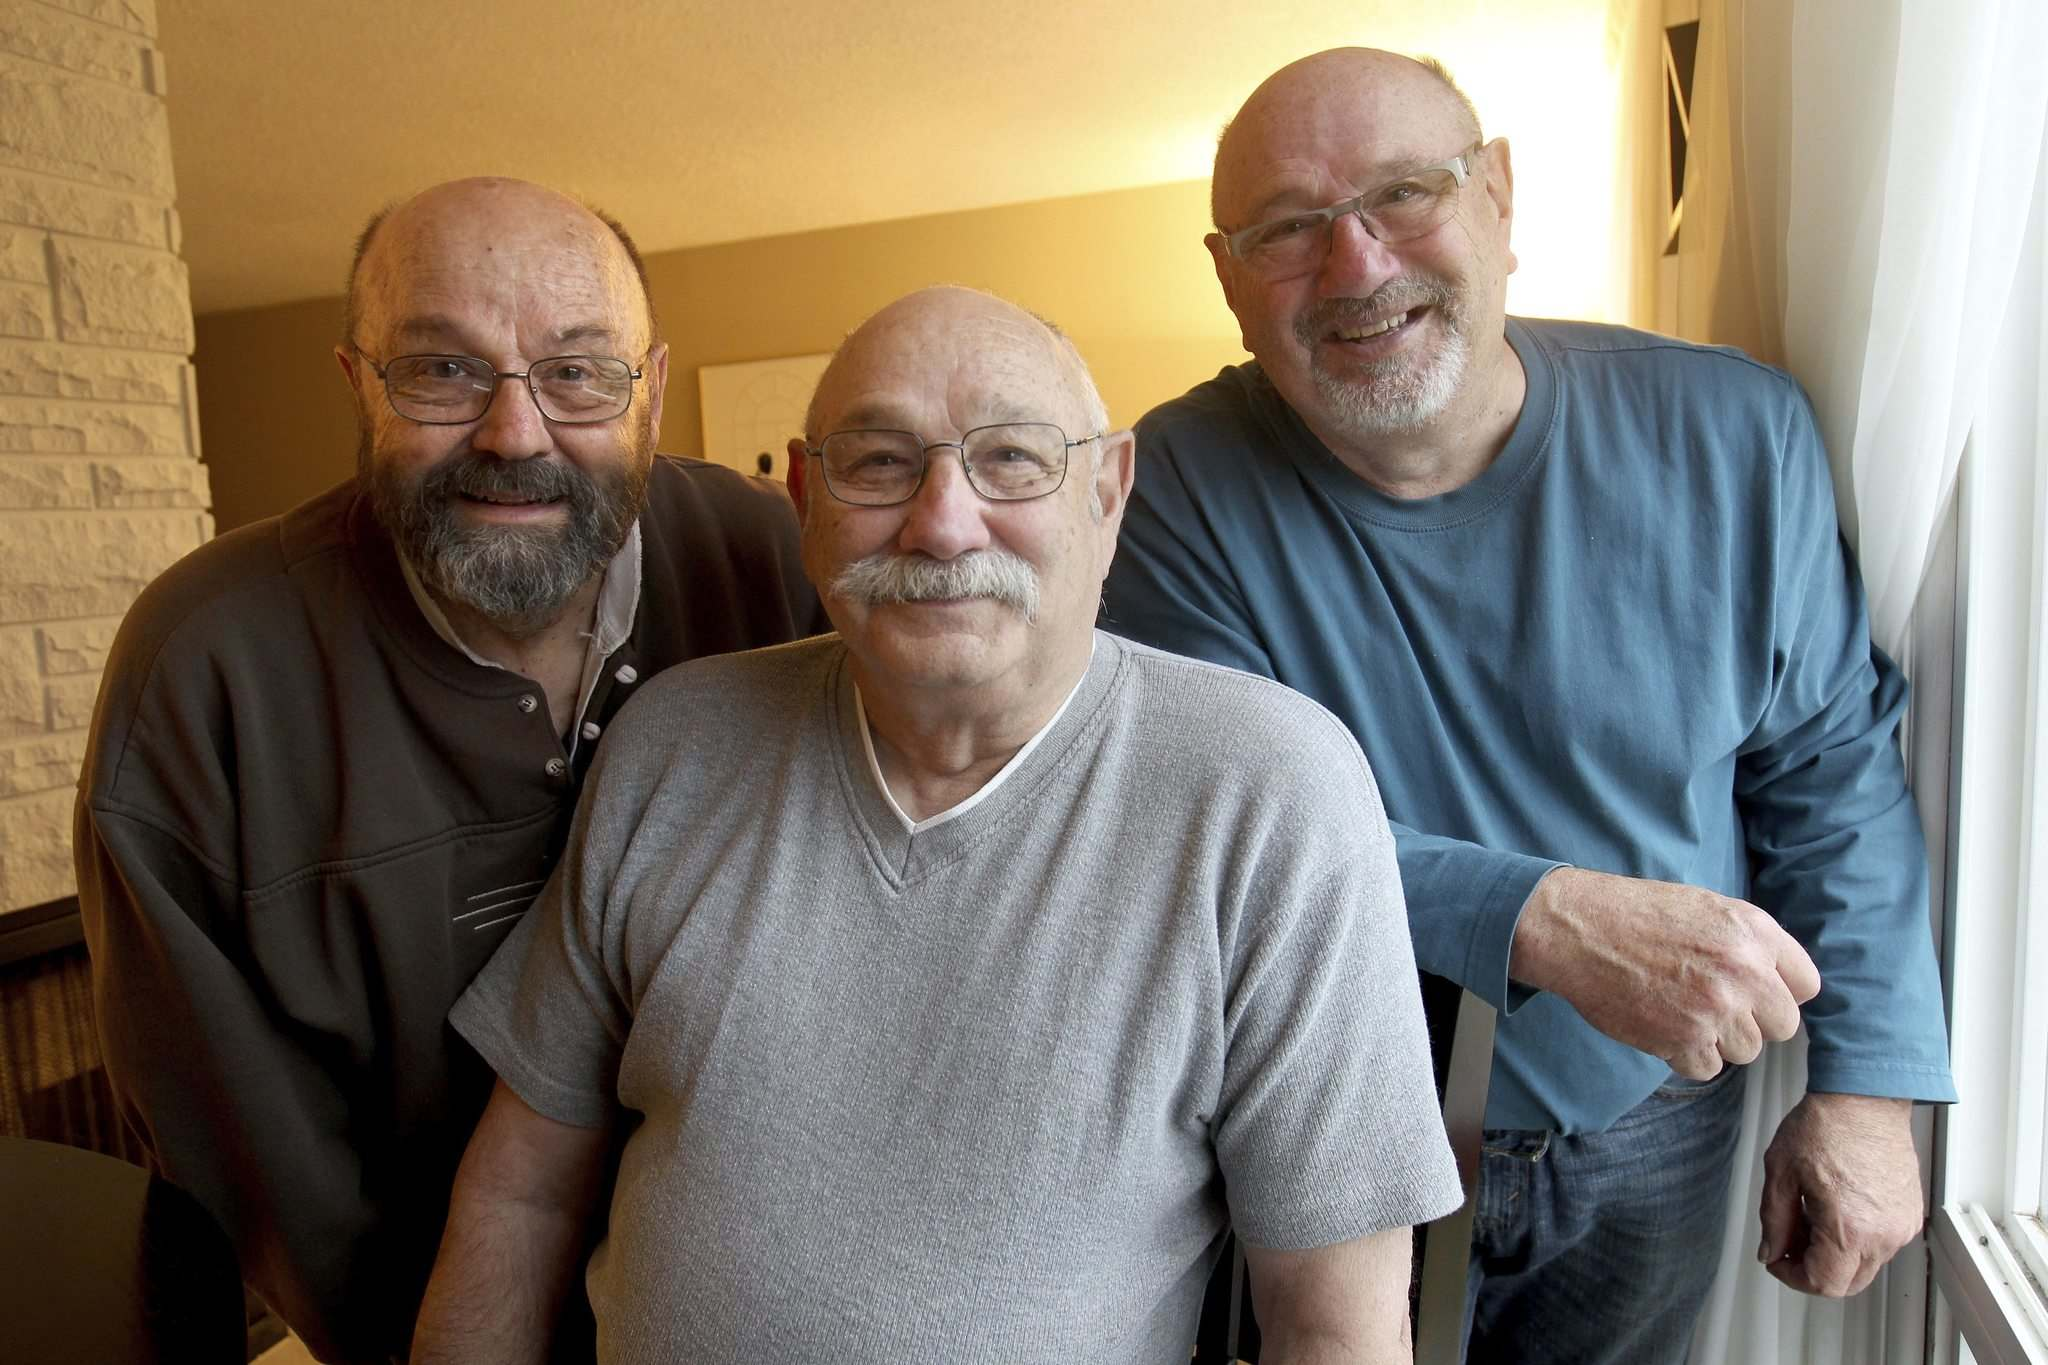 JOE BRYKSA / WINNIPEG FREE PRESS</p><p>The Steiner Brothers &mdash; Ron Steiner (from left), Rob and Roy &mdash; are now in their 70s. They had a long and successful career as entertainers and rubbed shoulders with some of the world&rsquo;s biggest stars.</p>